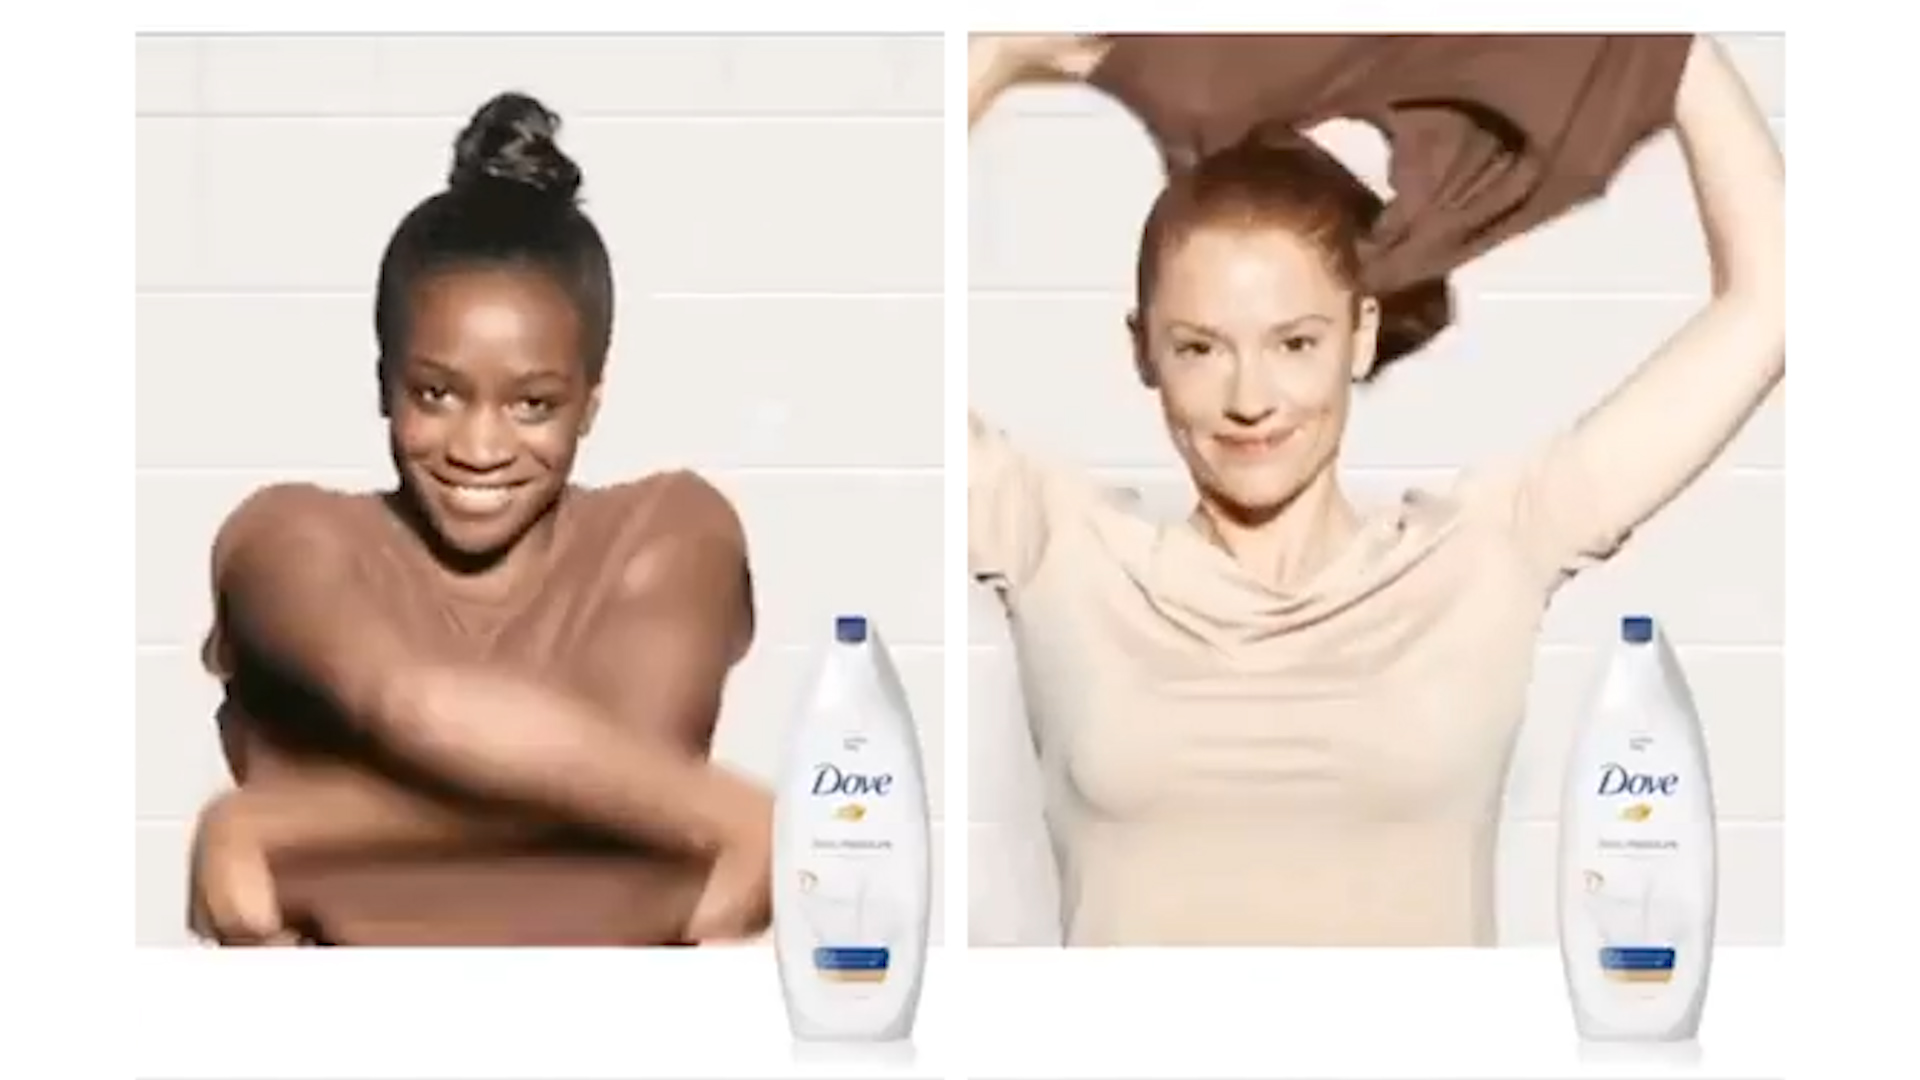 Outcry over Dove's controversial ad - CNN Video